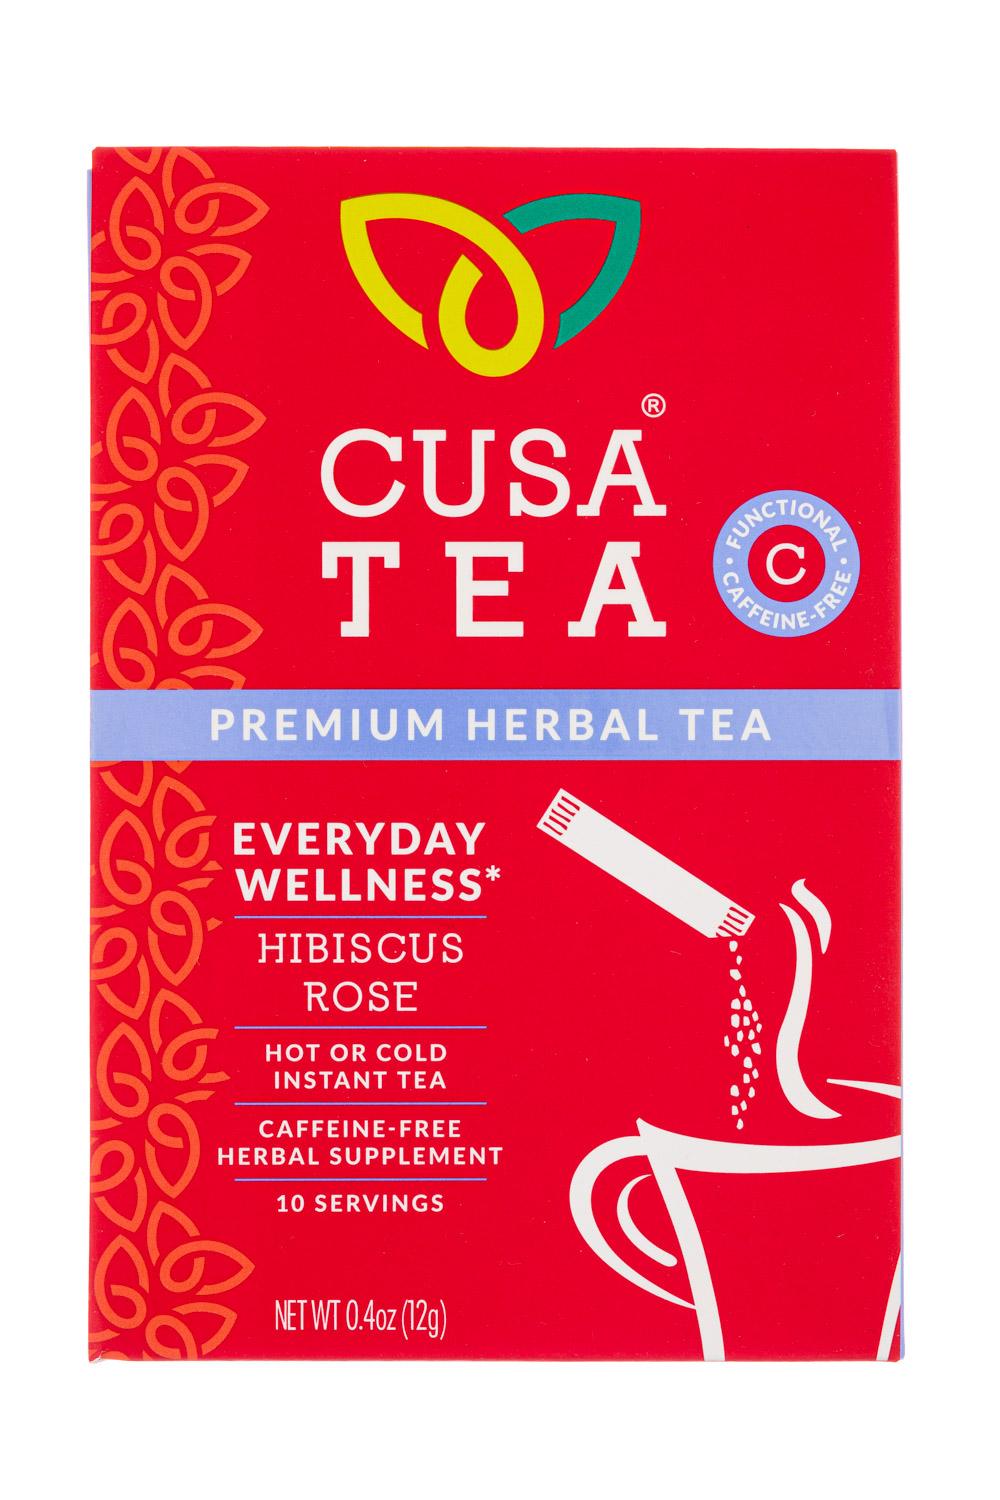 EVERYDAY WELLNESS: Hibiscus Rose